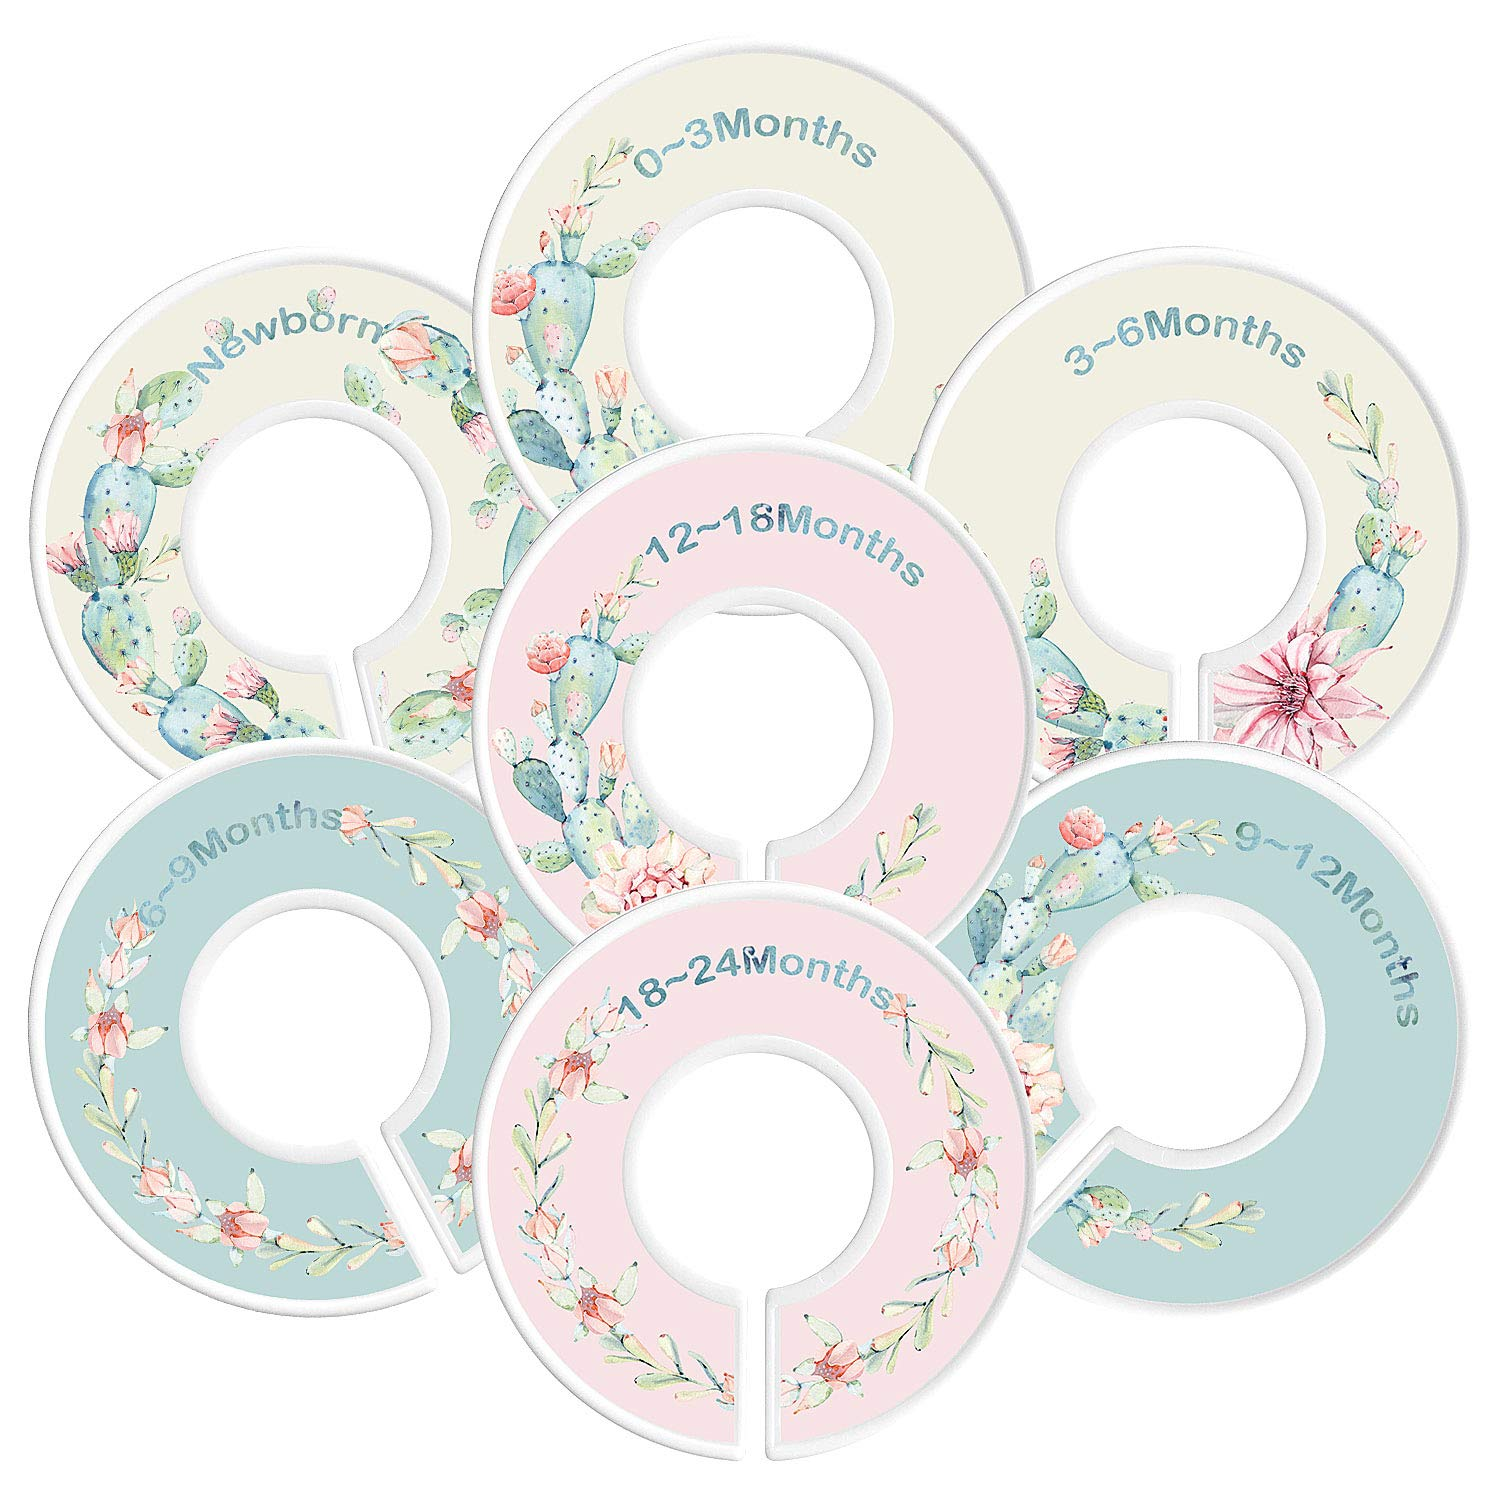 Baby Closet Dividers By Hombae– Set Of 7 Double-Sided Pattern Closet Dividers Sized From Newborn To 18-24 Months– Perfect Nursery Décor & Closet Organizer For Baby Boy & Girl– Unique Succulent Designs Hombae Ltd. Baby Closet Size Dividers